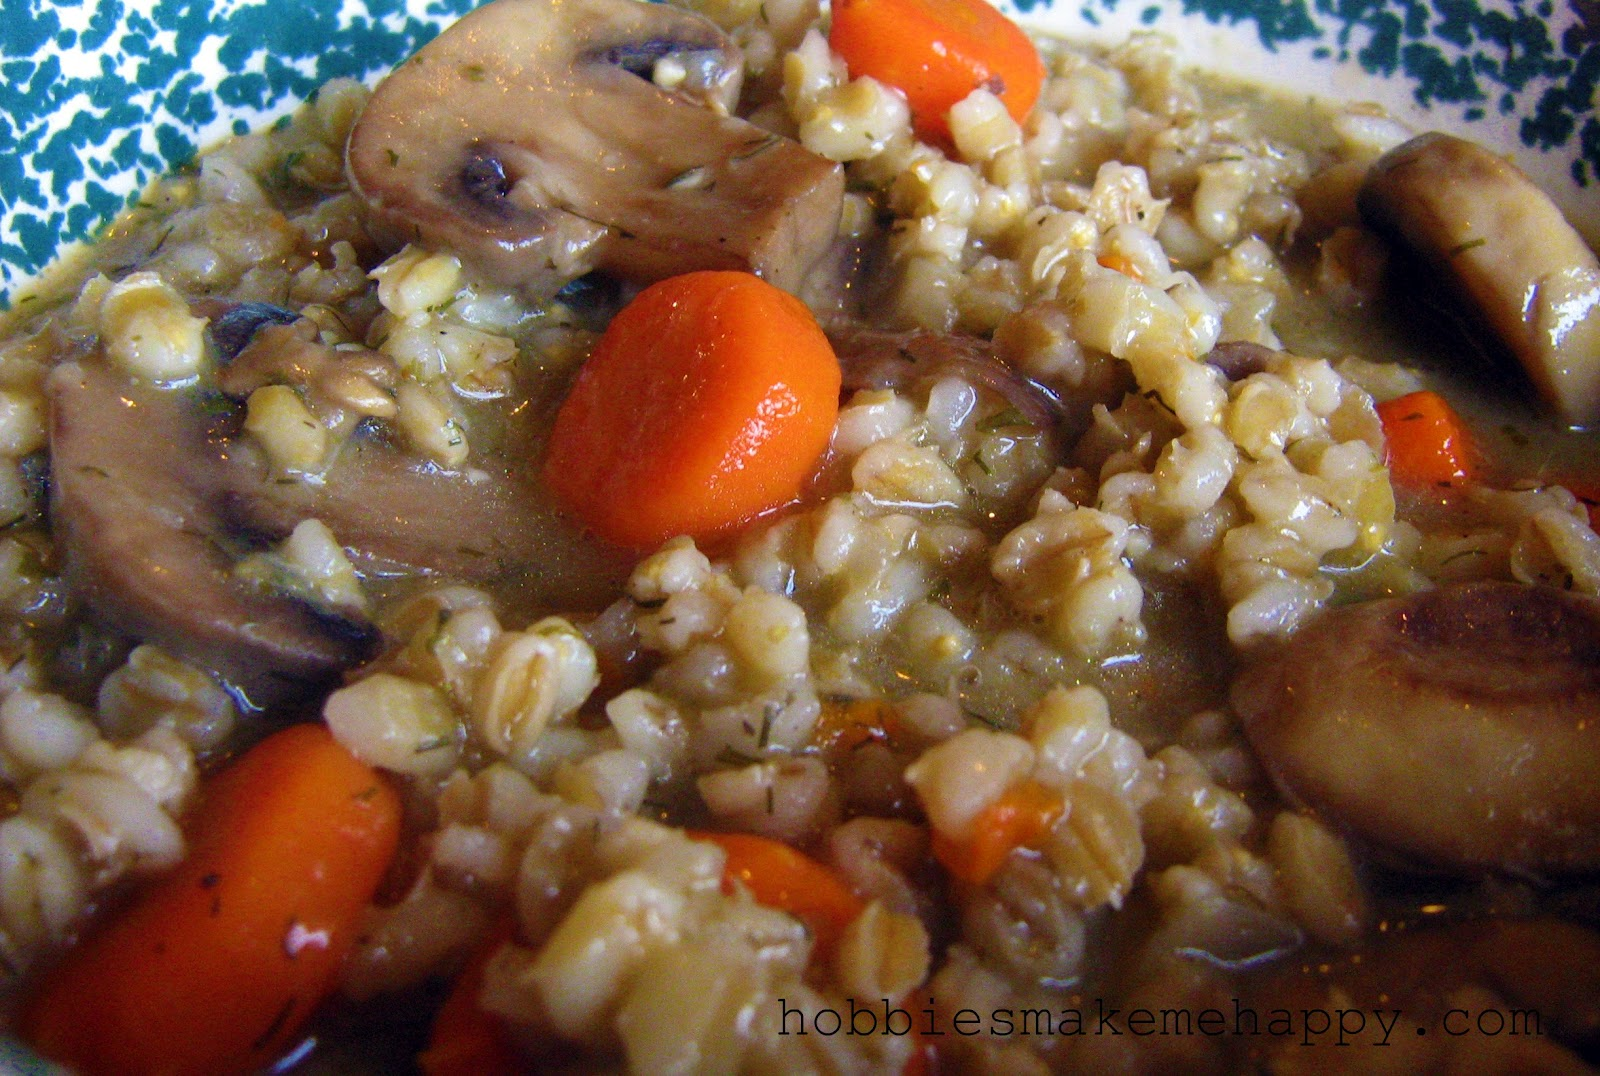 Hobbies Make Me Happy: Mushroom Barley Soup